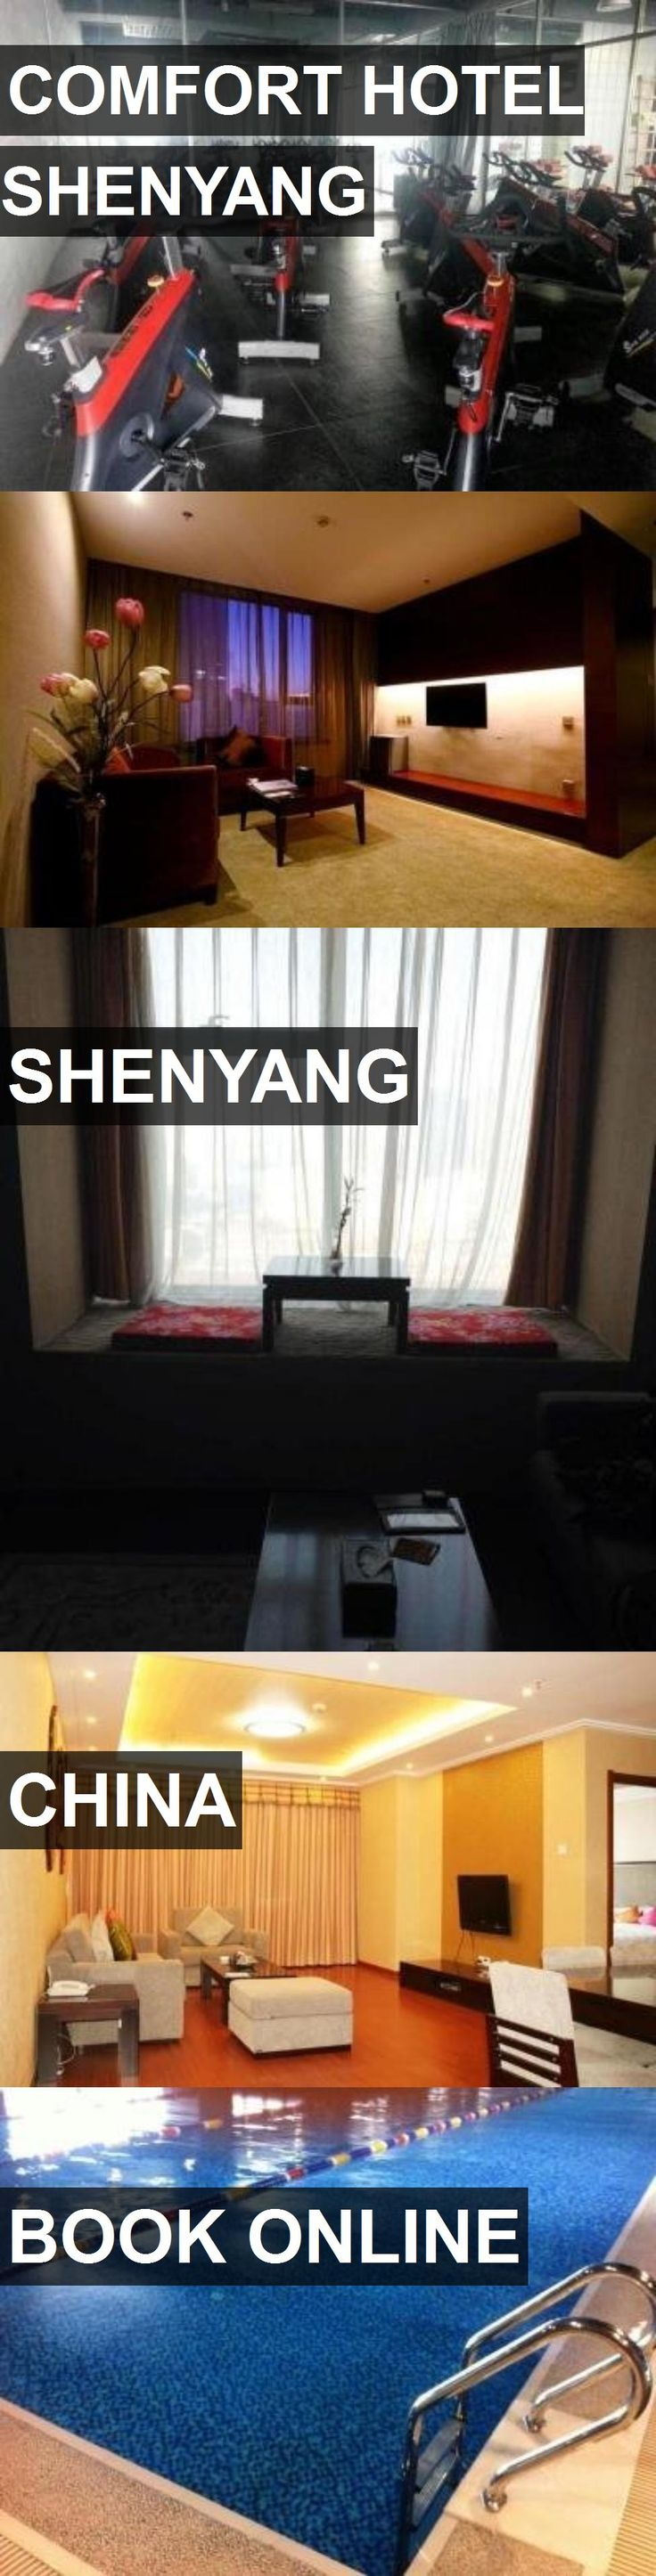 COMFORT HOTEL SHENYANG in Shenyang, China. For more information, photos, reviews and best prices please follow the link. #China #Shenyang #travel #vacation #hotel